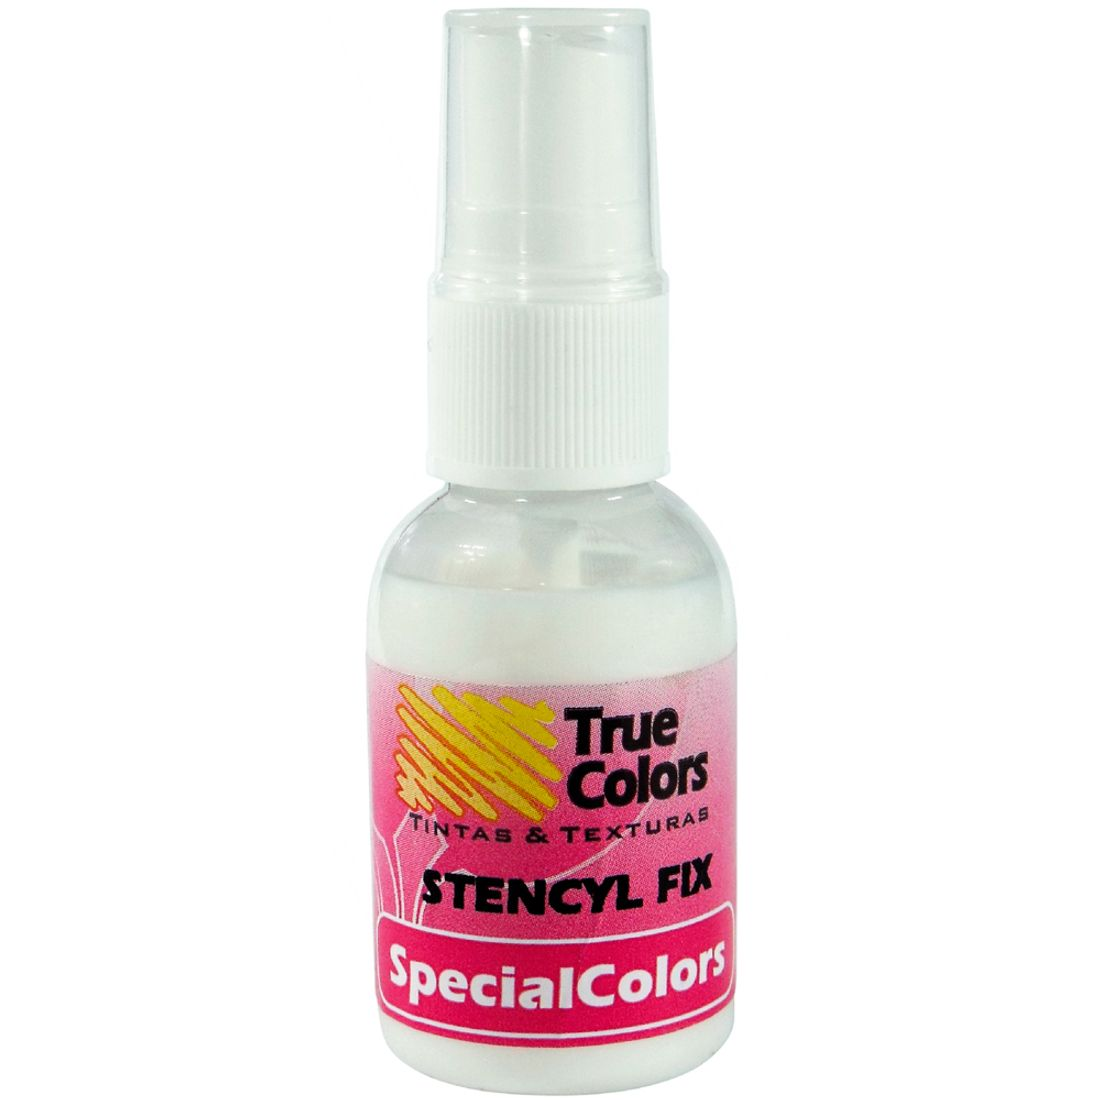 stencyl-fix-true-colors-30-ml